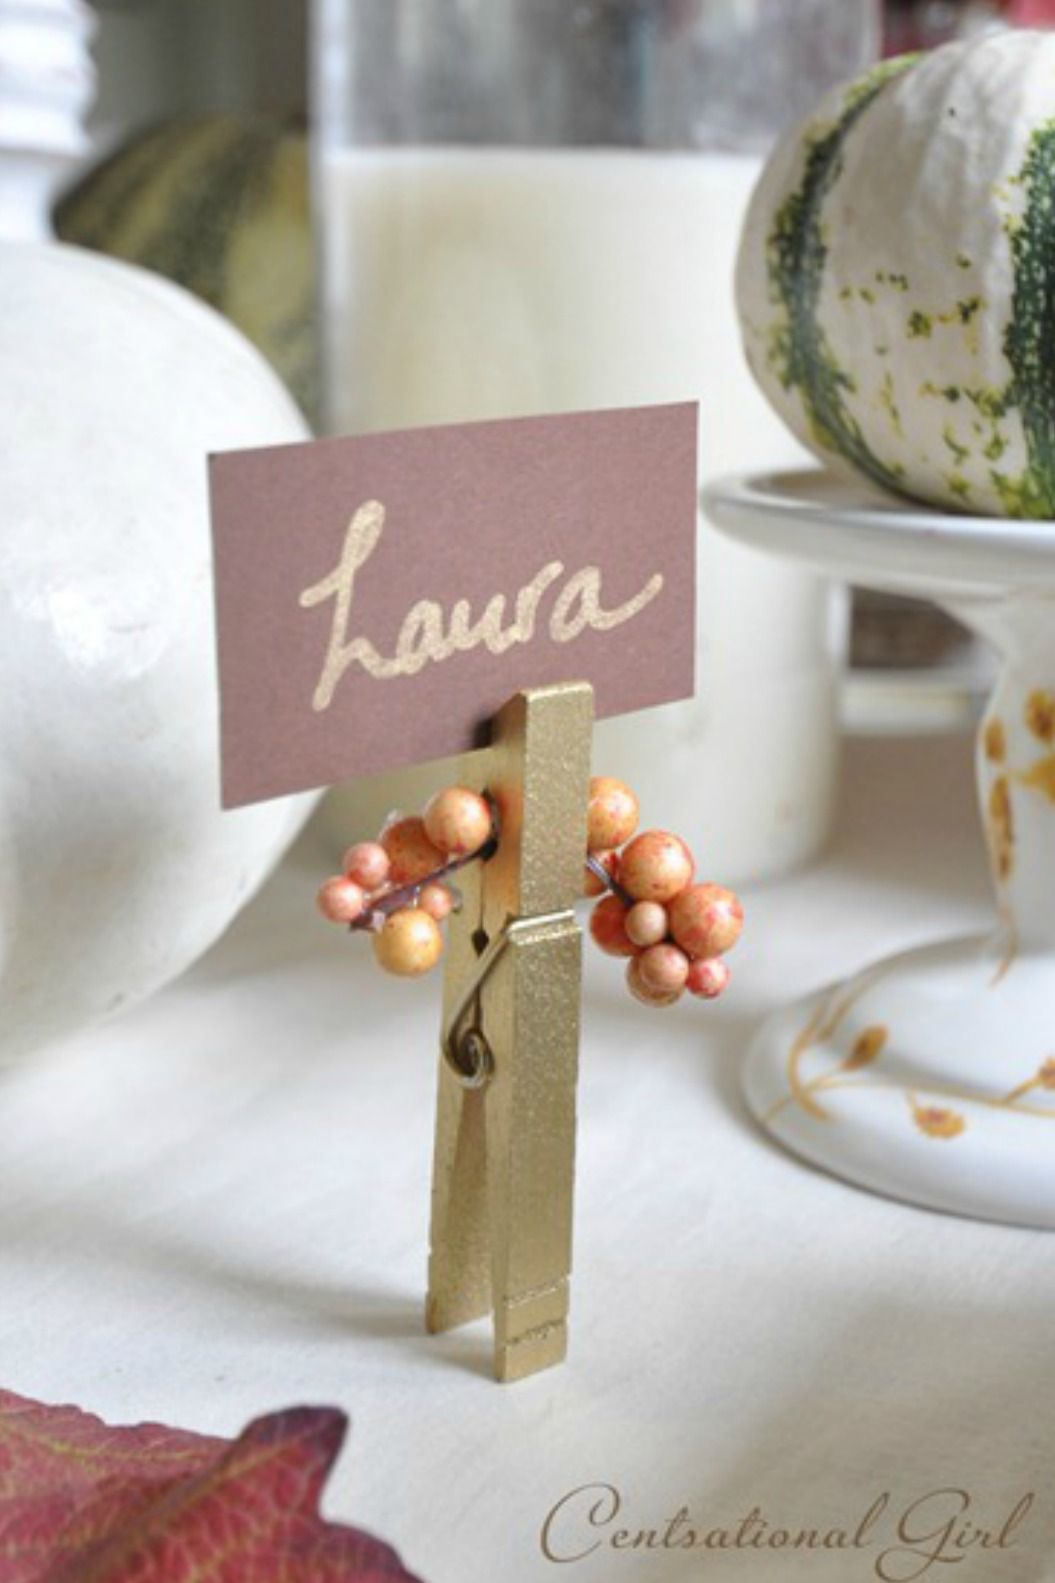 45 Thanksgiving Table Settings Tablescapes Decoration Ideas